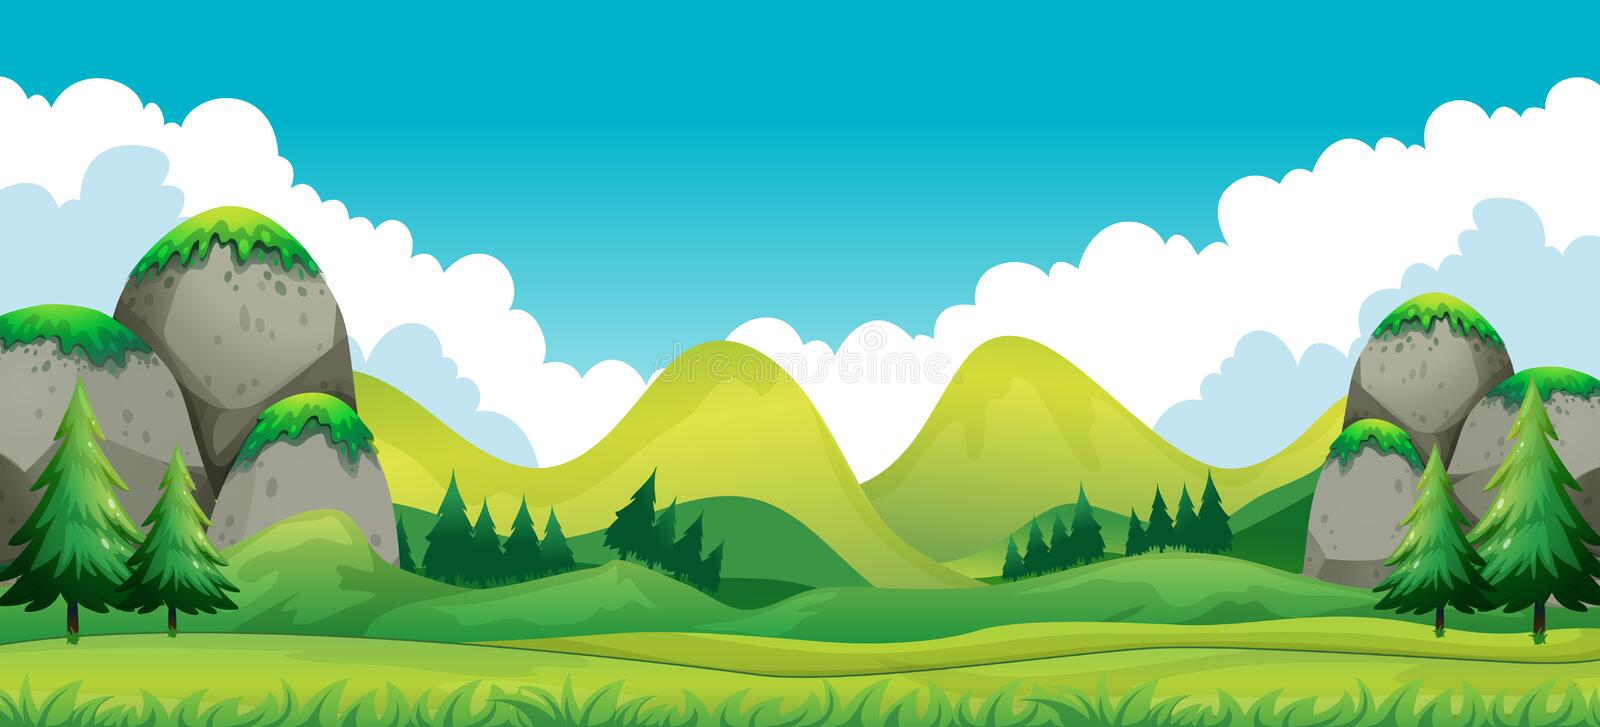 Scene of green field with mountains background stock illustration